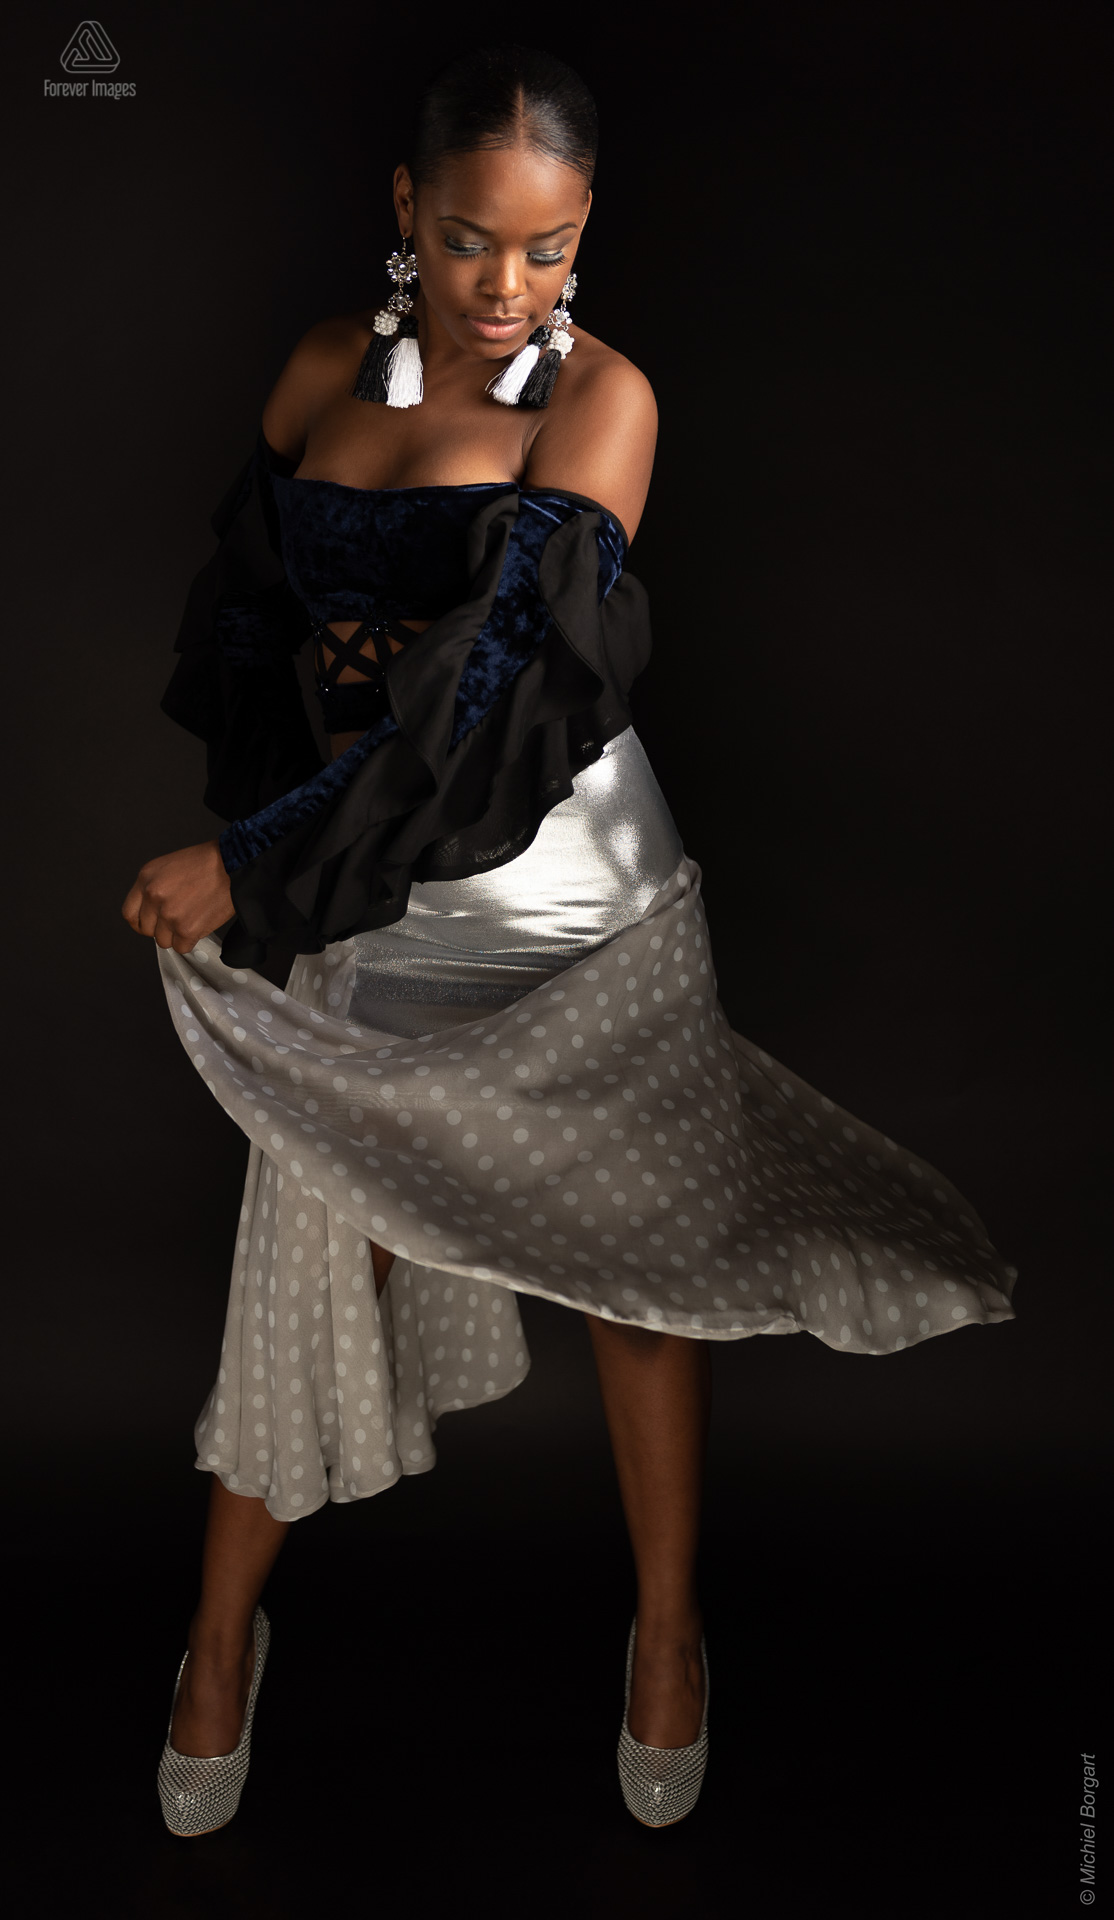 Fashion photo blue top with silver skirt | Mariangel Dolorita Miss Reina Seu Ronald Rizzo Piu Colore | Fashion Photographer Michiel Borgart - Forever Images.